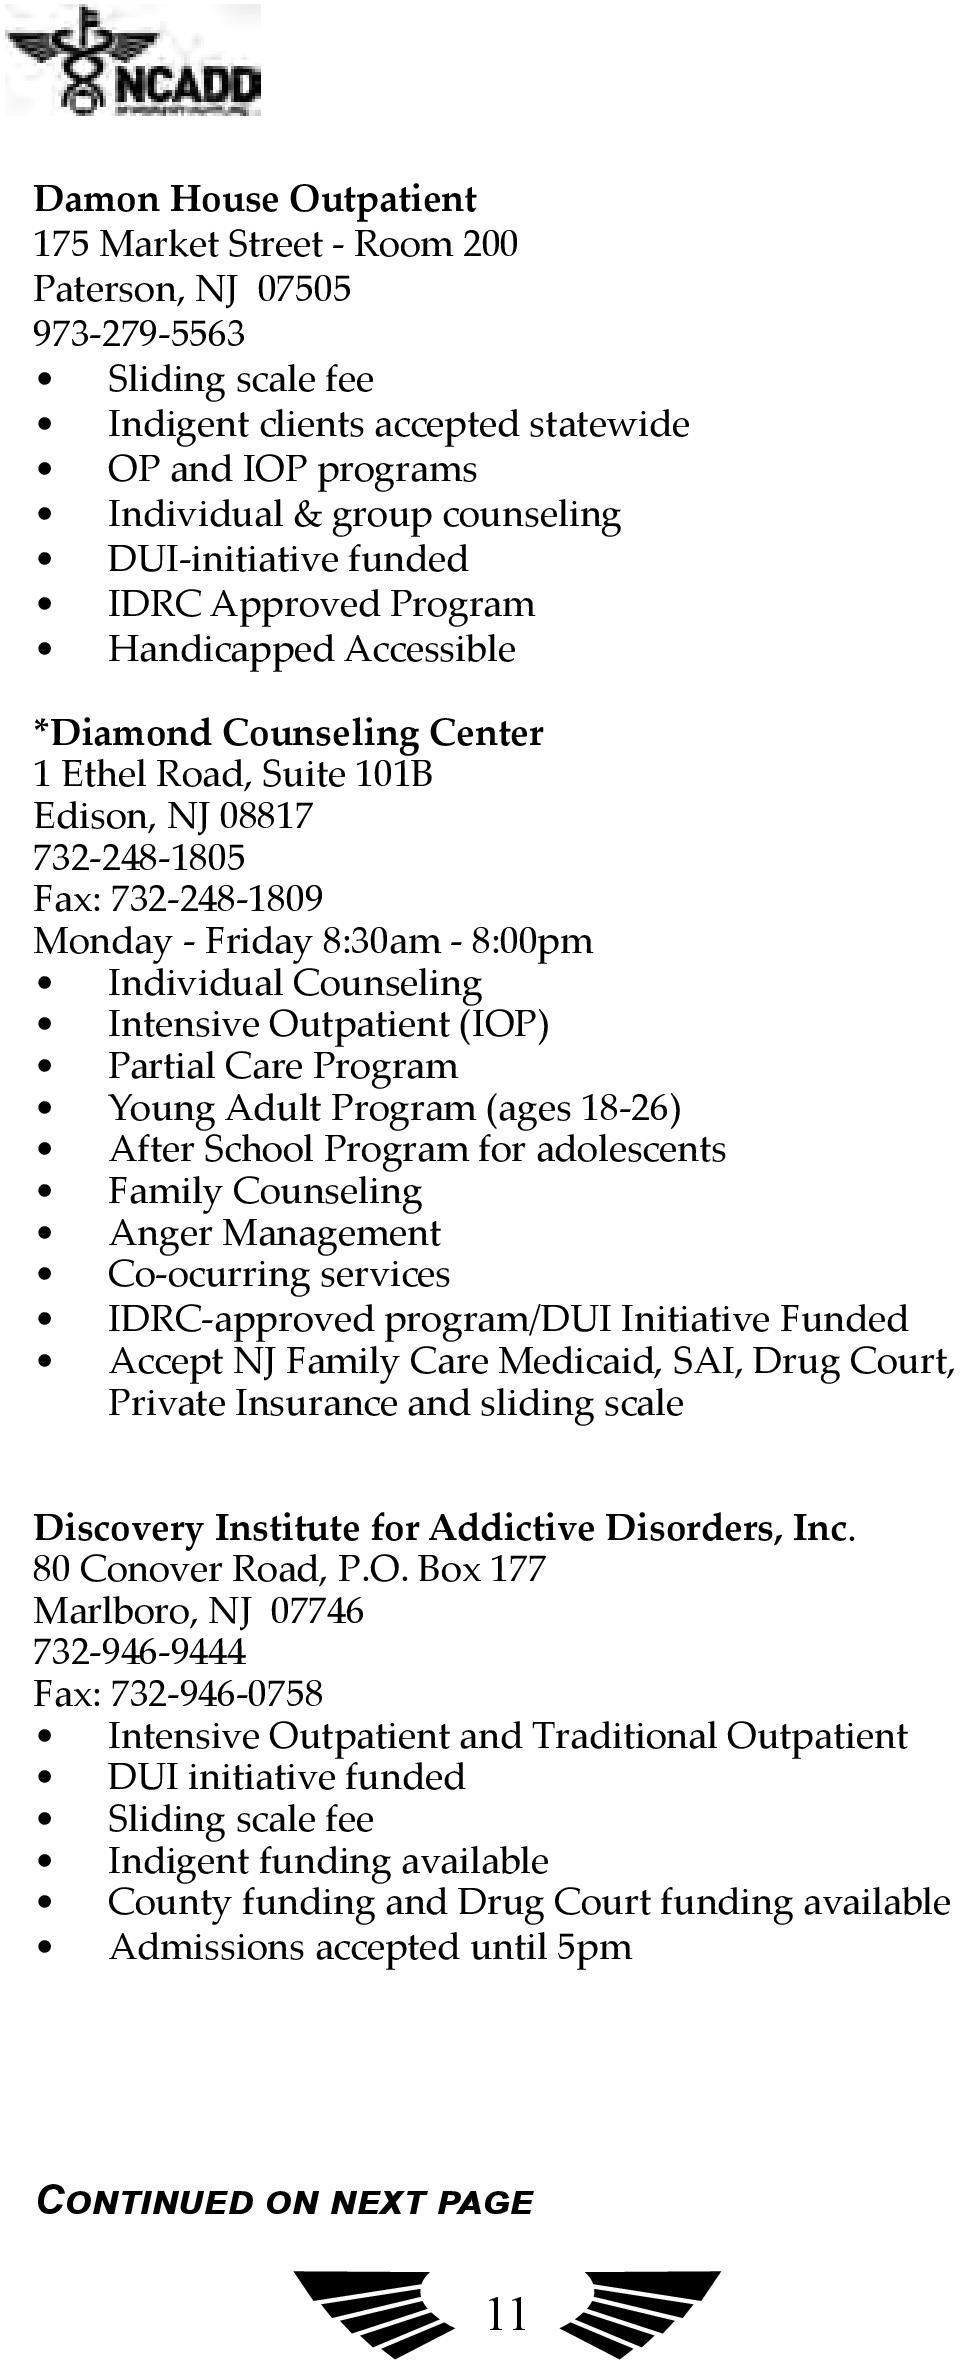 Individual Counseling Intensive Outpatient (IOP) Partial Care Program Young Adult Program (ages 18-26) After School Program for adolescents Family Counseling Anger Management Co-ocurring services